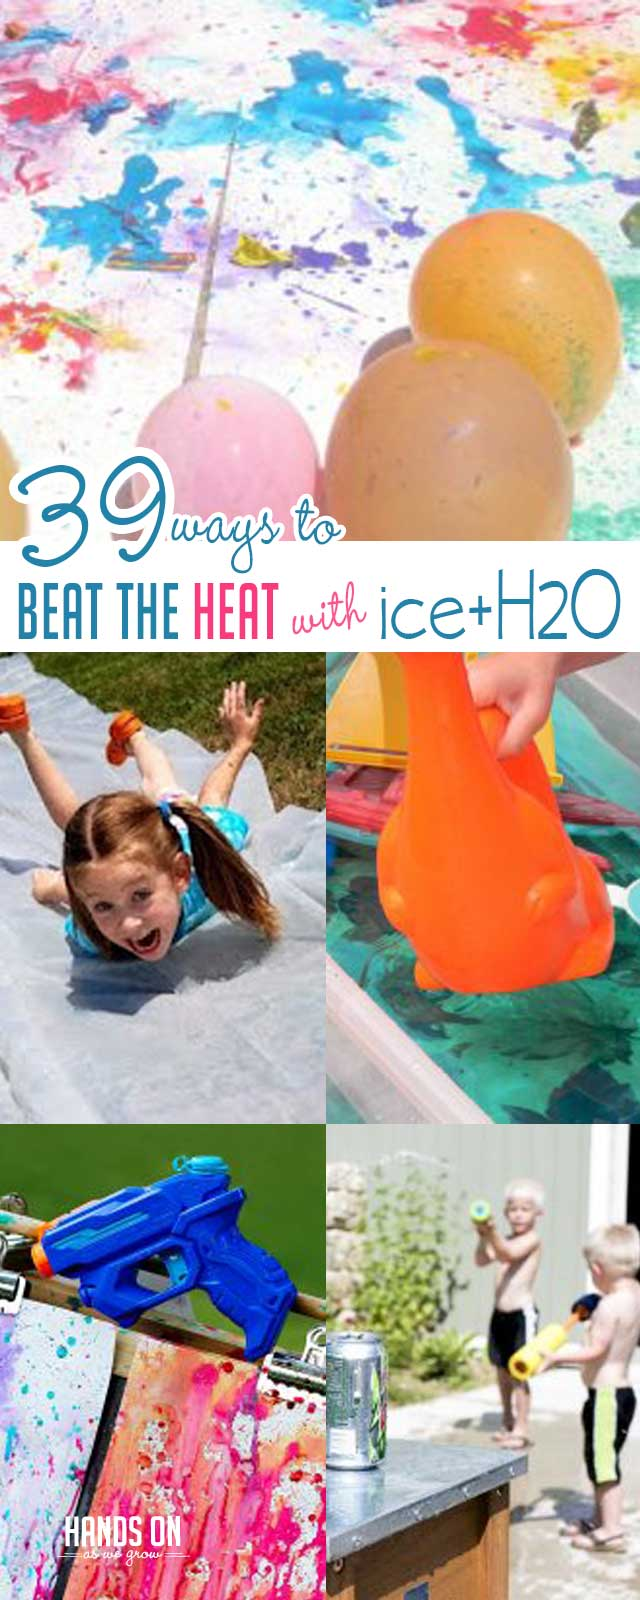 Your kids will love these 39 super simple ways to beat the heat with ice, water, and sweet treats!